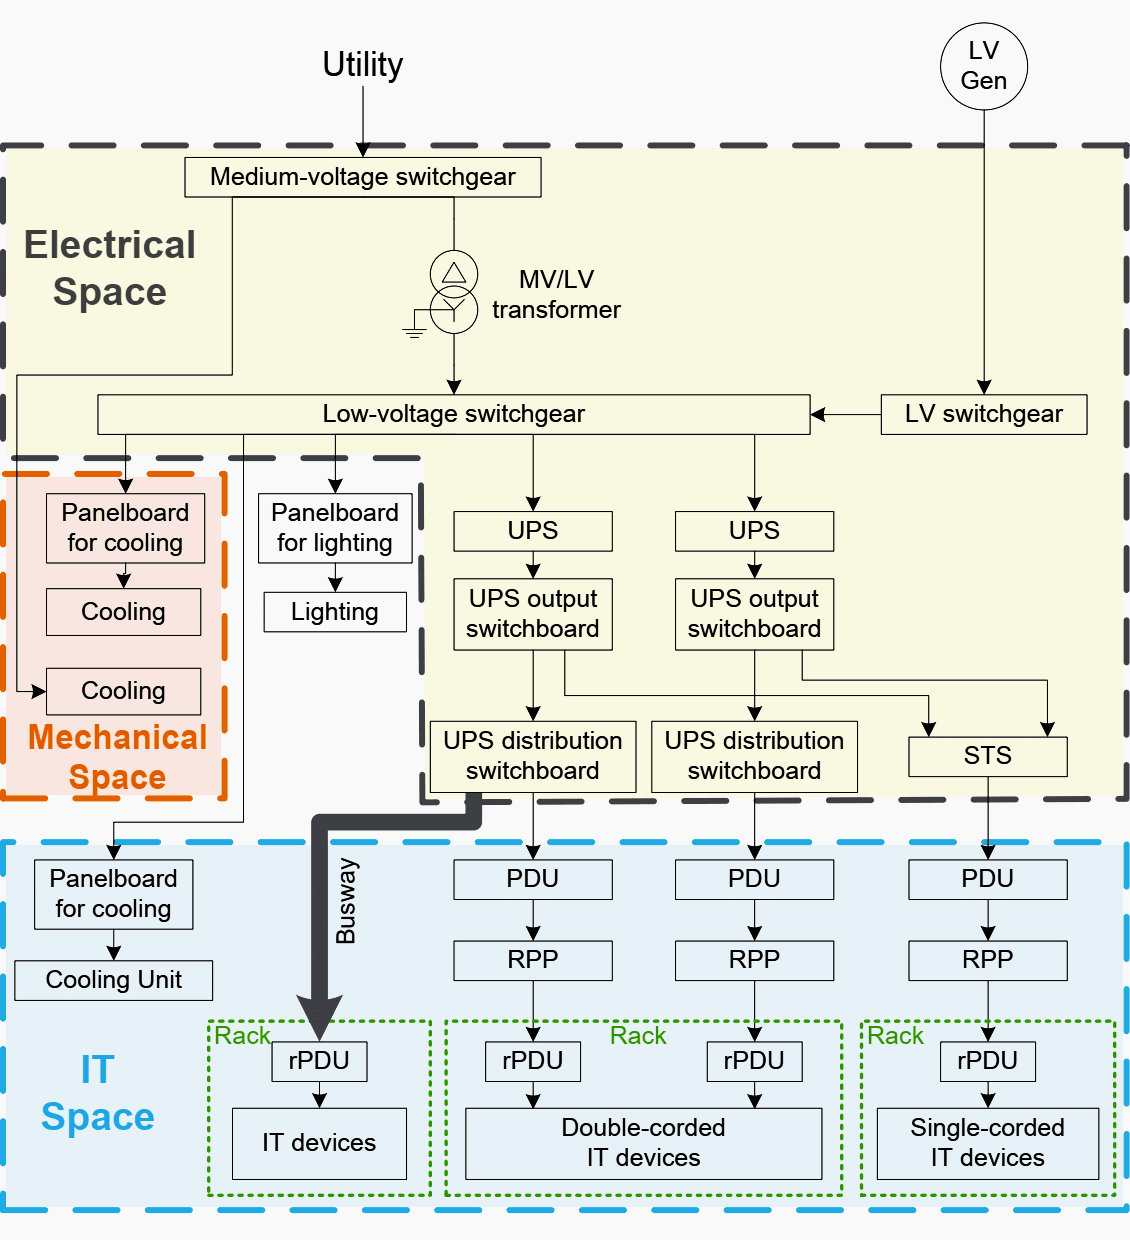 hight resolution of block diagram showing an electrical distribution system in a data center